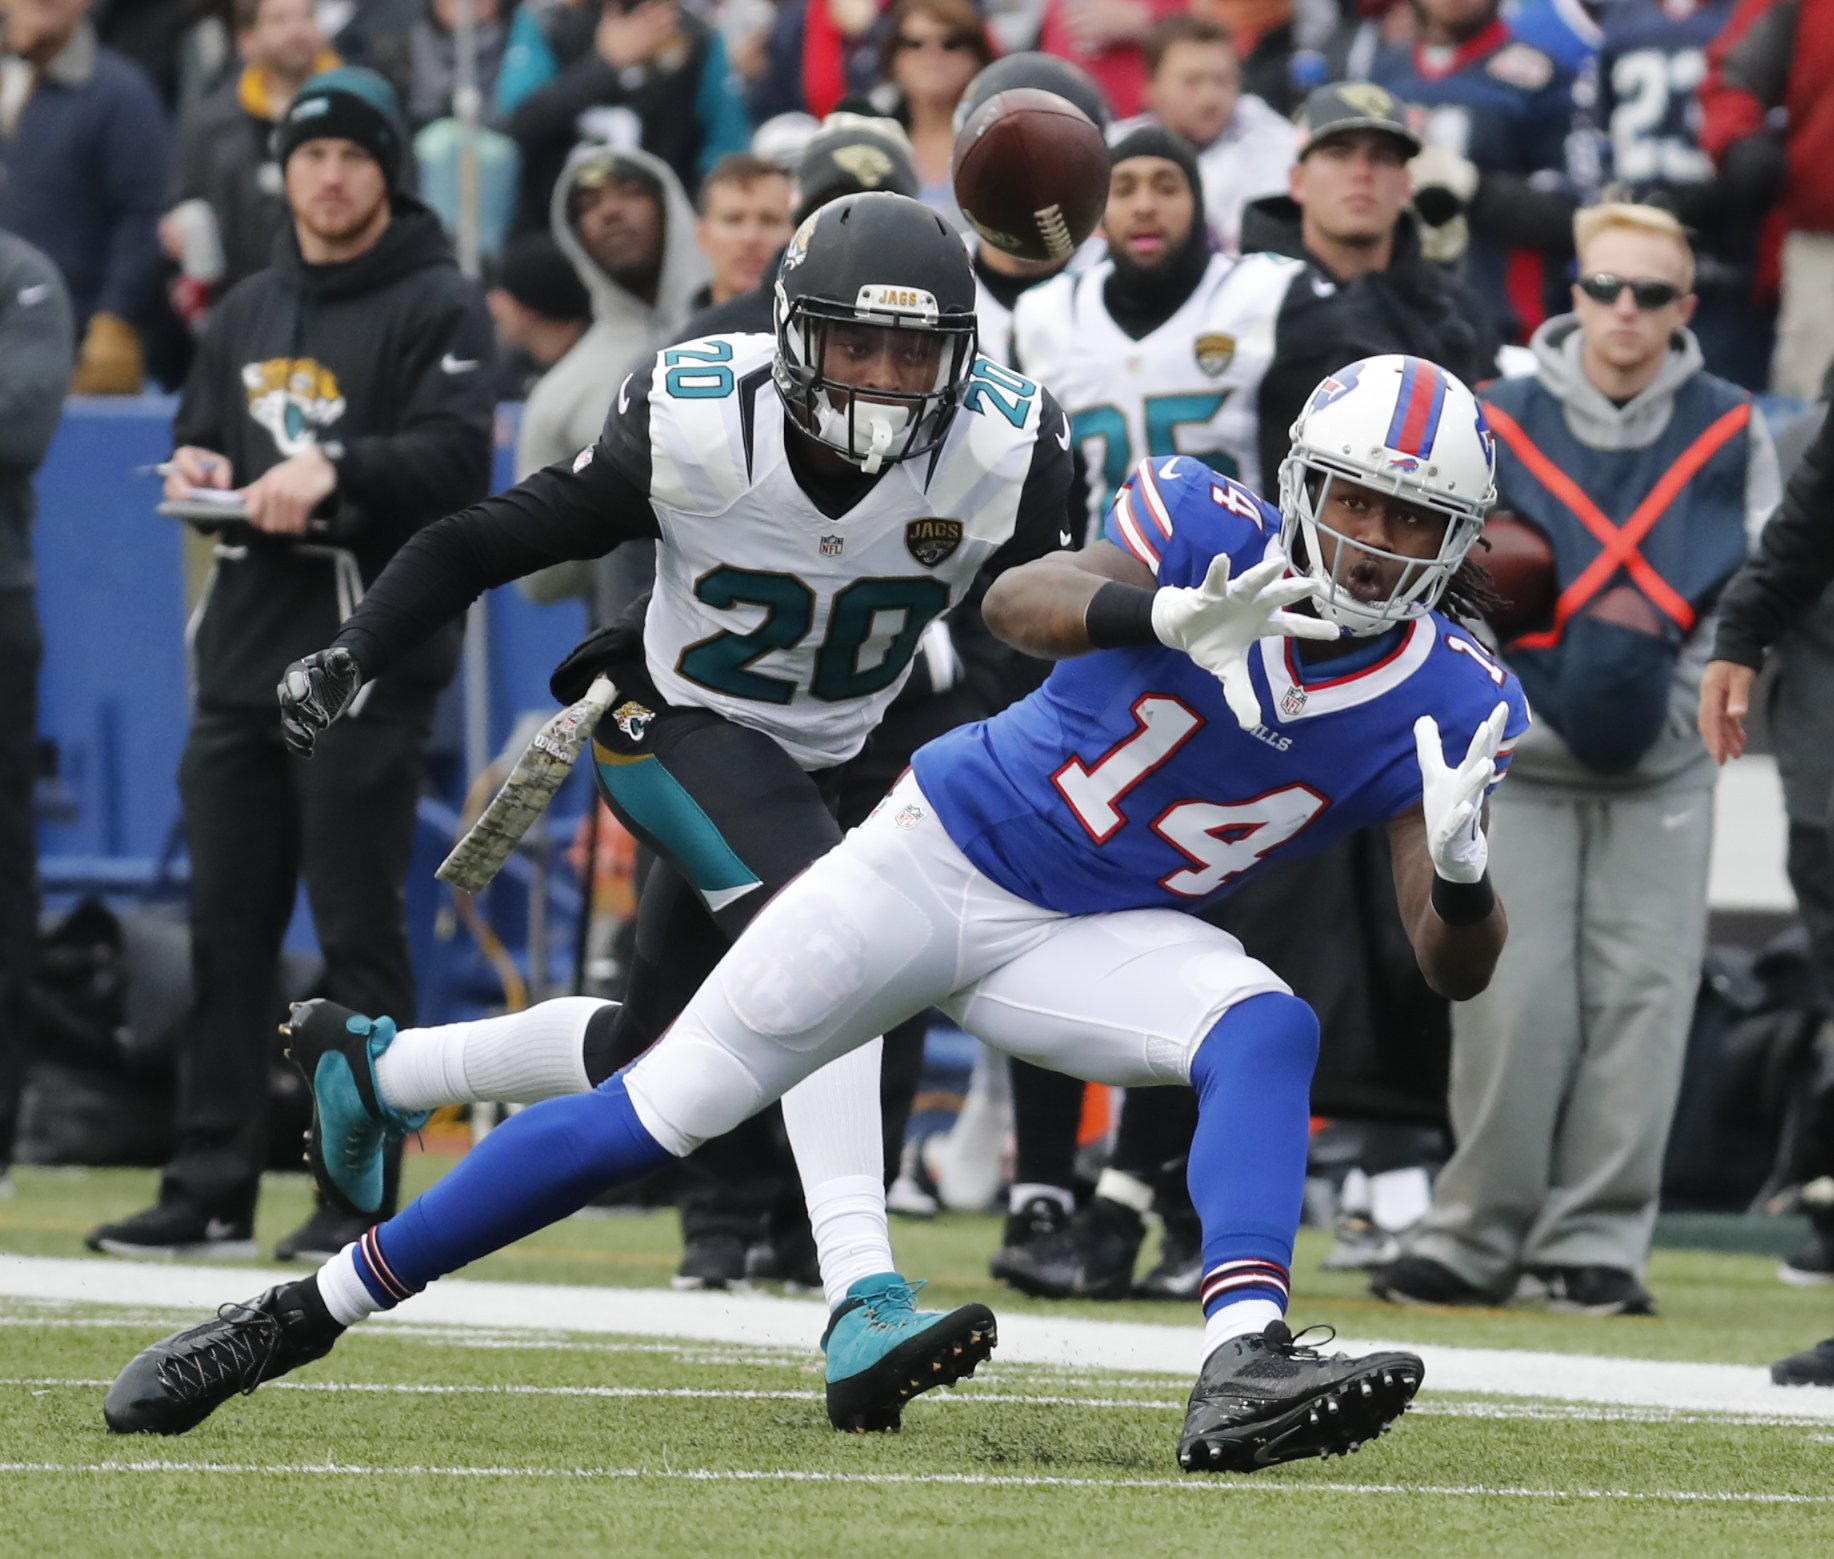 Sammy Watkins prepares to make a catch during the first half against the Jacksonville Jaguars on Nov. 27, 2016. (Harry Scull Jr./Buffalo News)